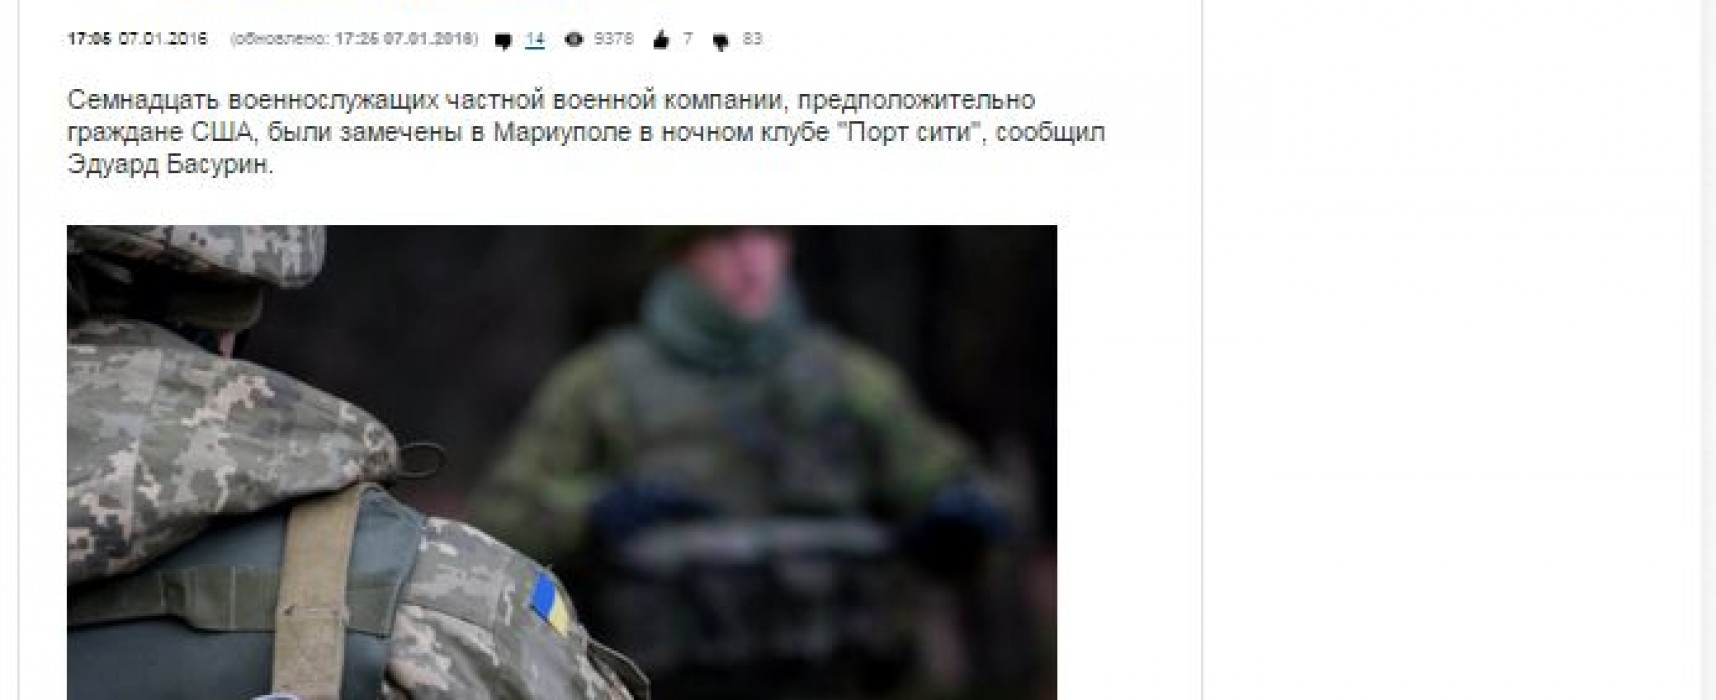 Fake: Drunken US mercenaries on a rampage in Mariupol